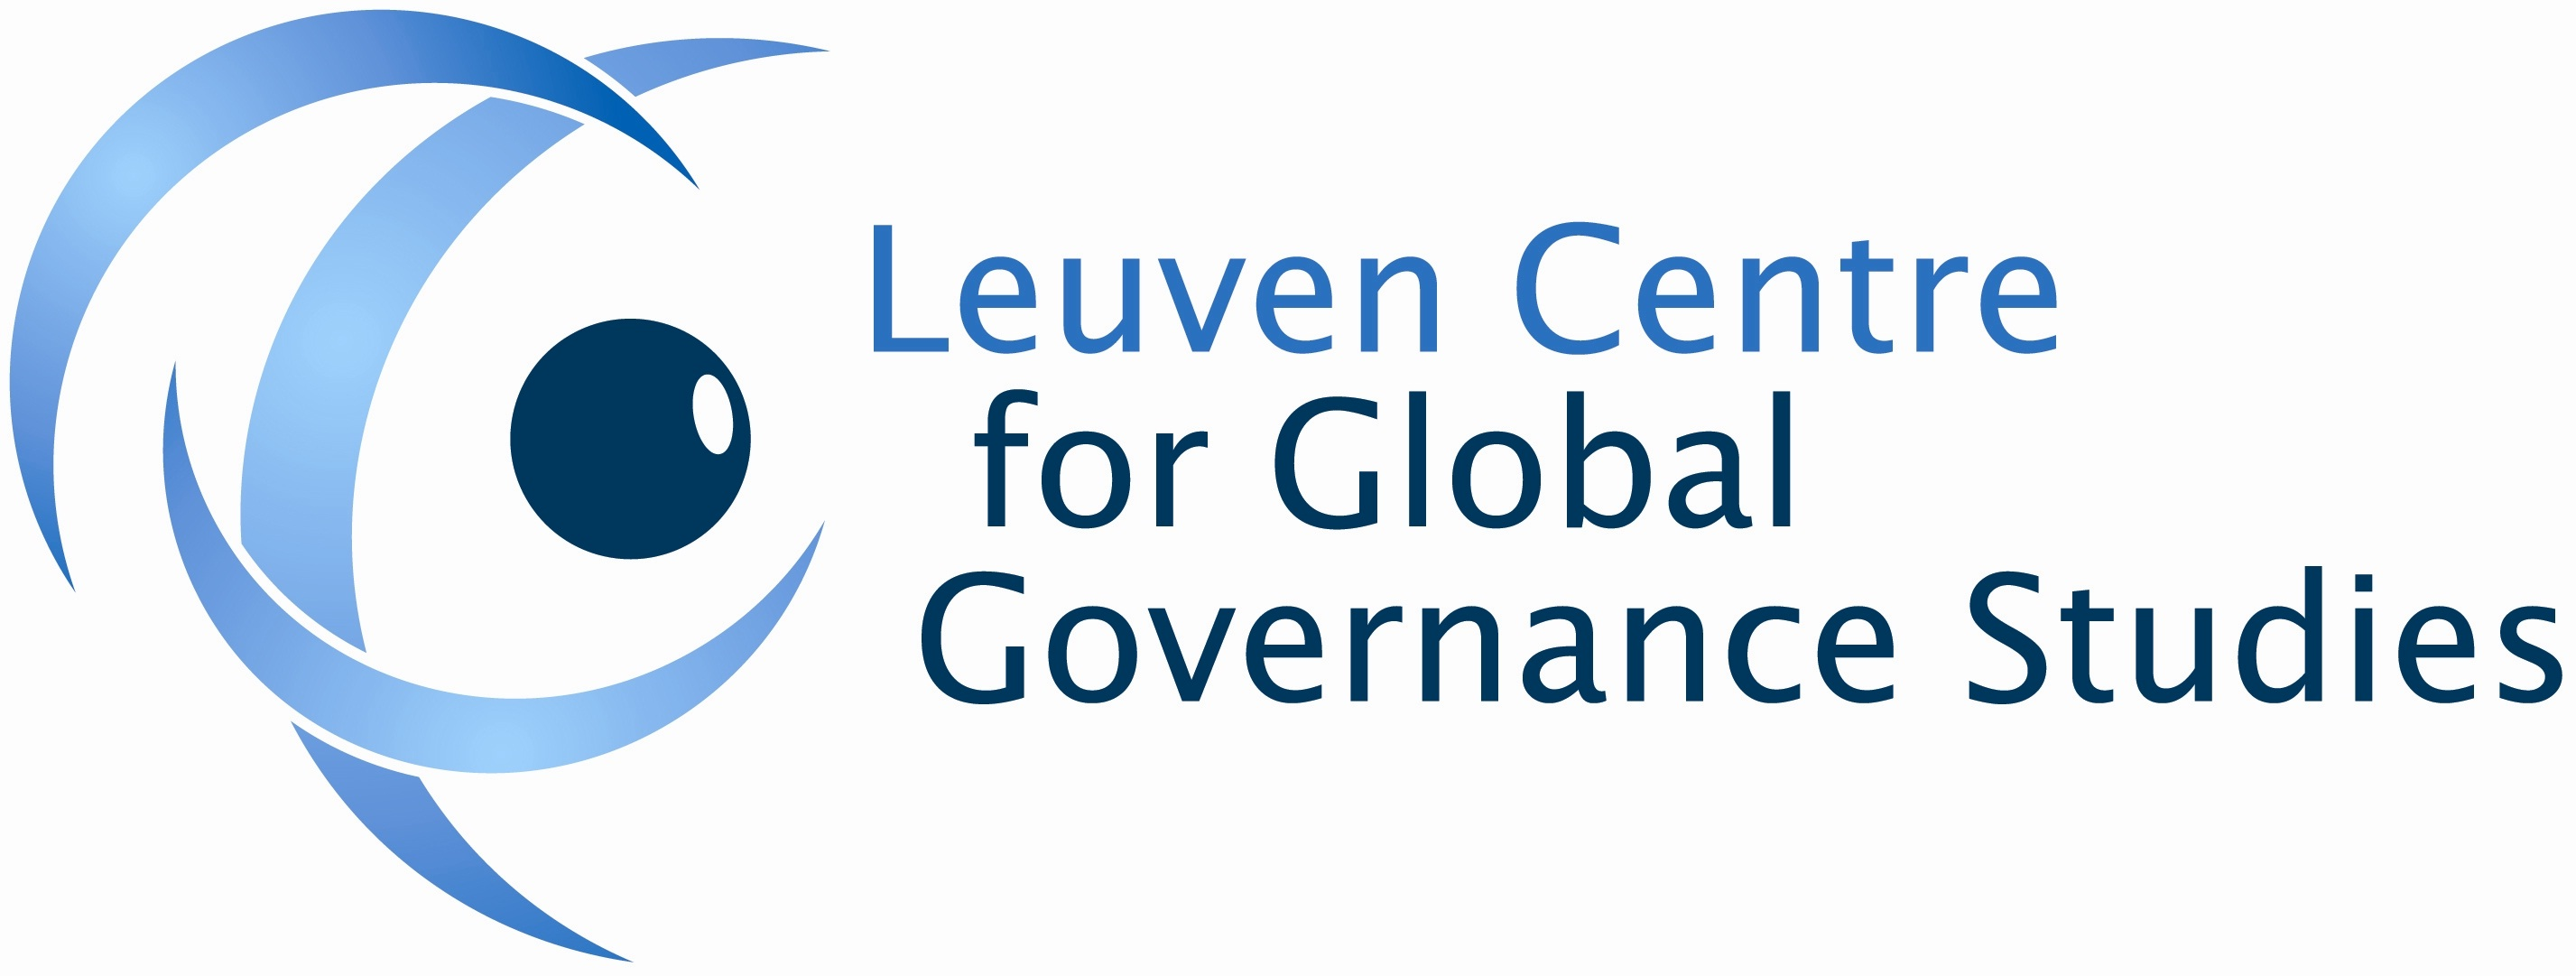 Leuven Centre for Global Governance Studies